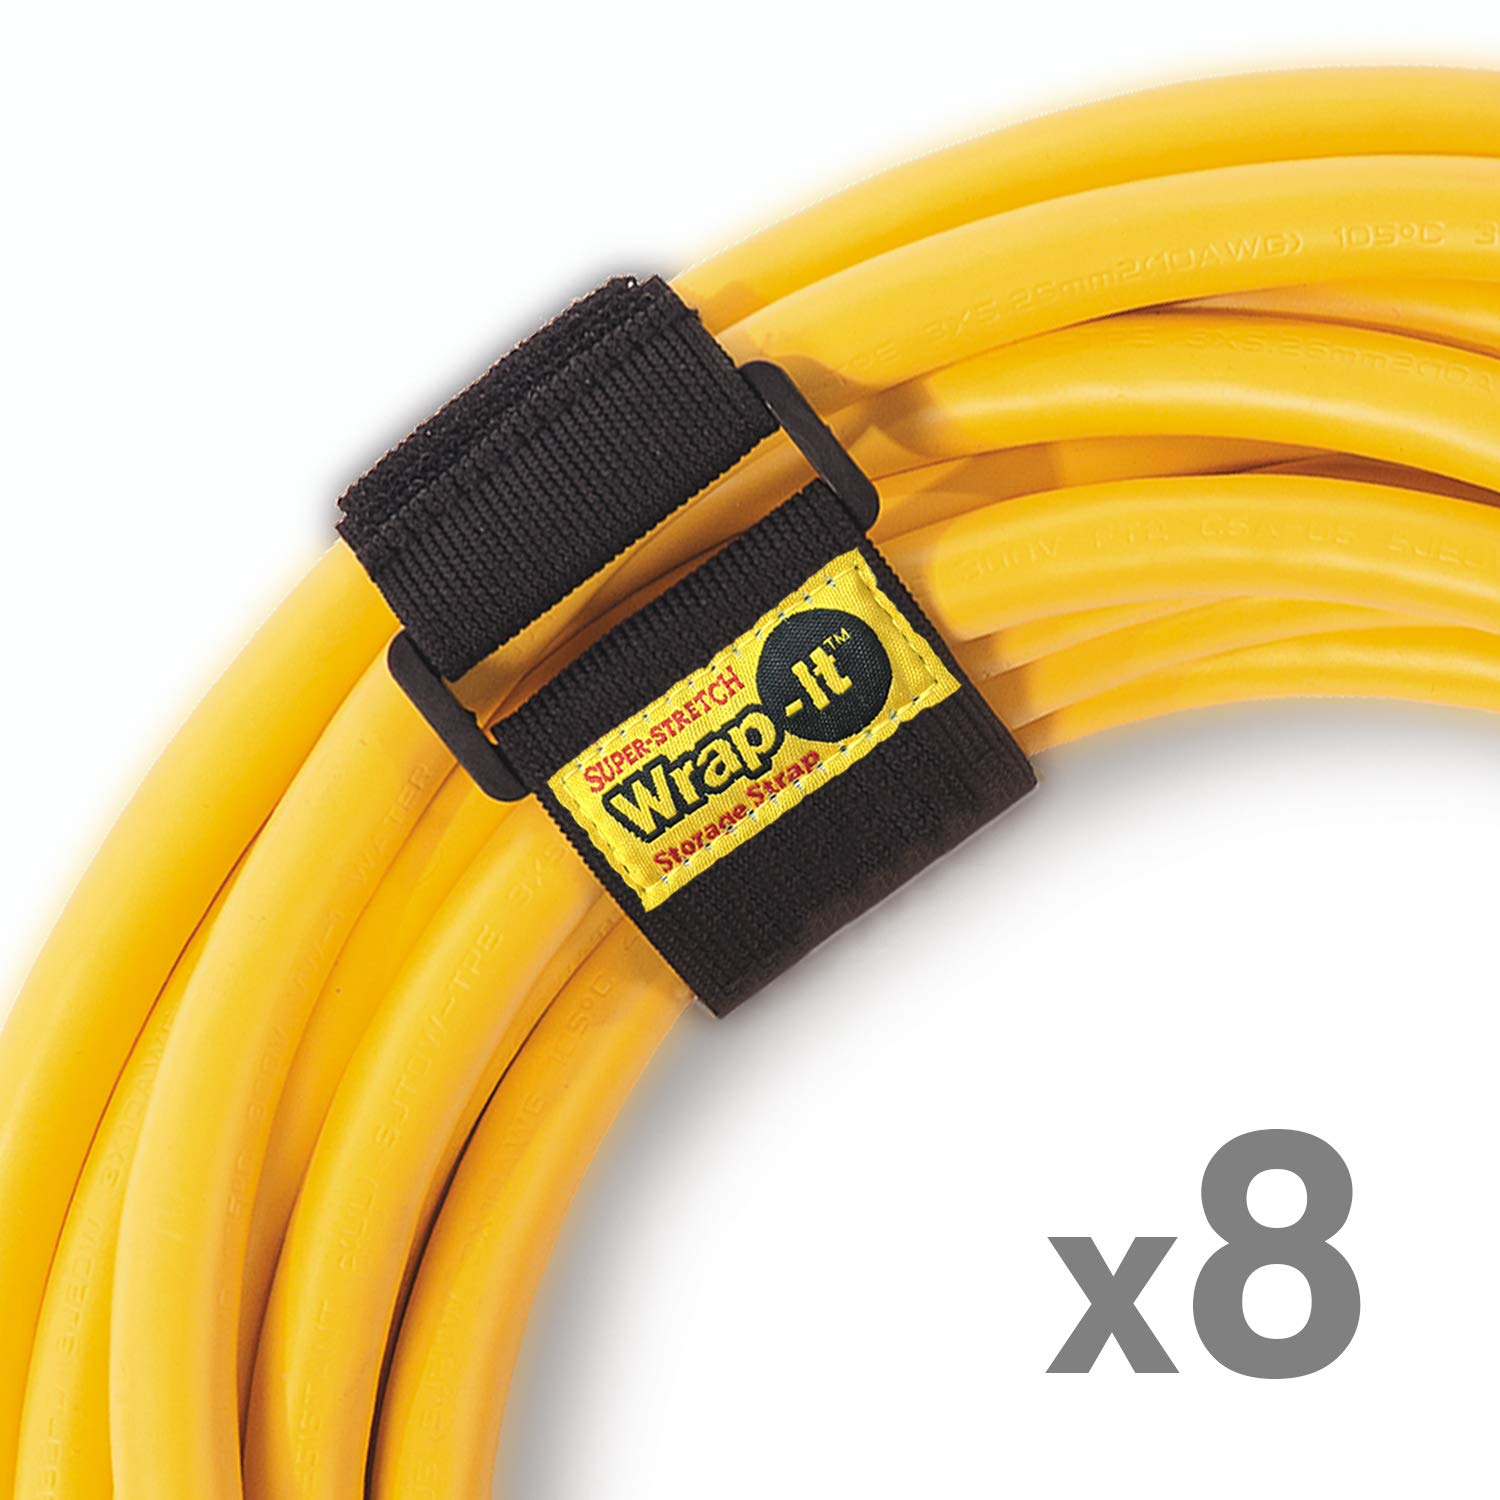 Wrap It Super-Stretch Storage Straps (12'' 8 Pack) - Elastic Hook & Loop Cinch Strap Organizer for Extension Cords, Hoses, Rope & More - Garage, Home, Shop, Shed, Truck, Boat, Marine & RV Organization